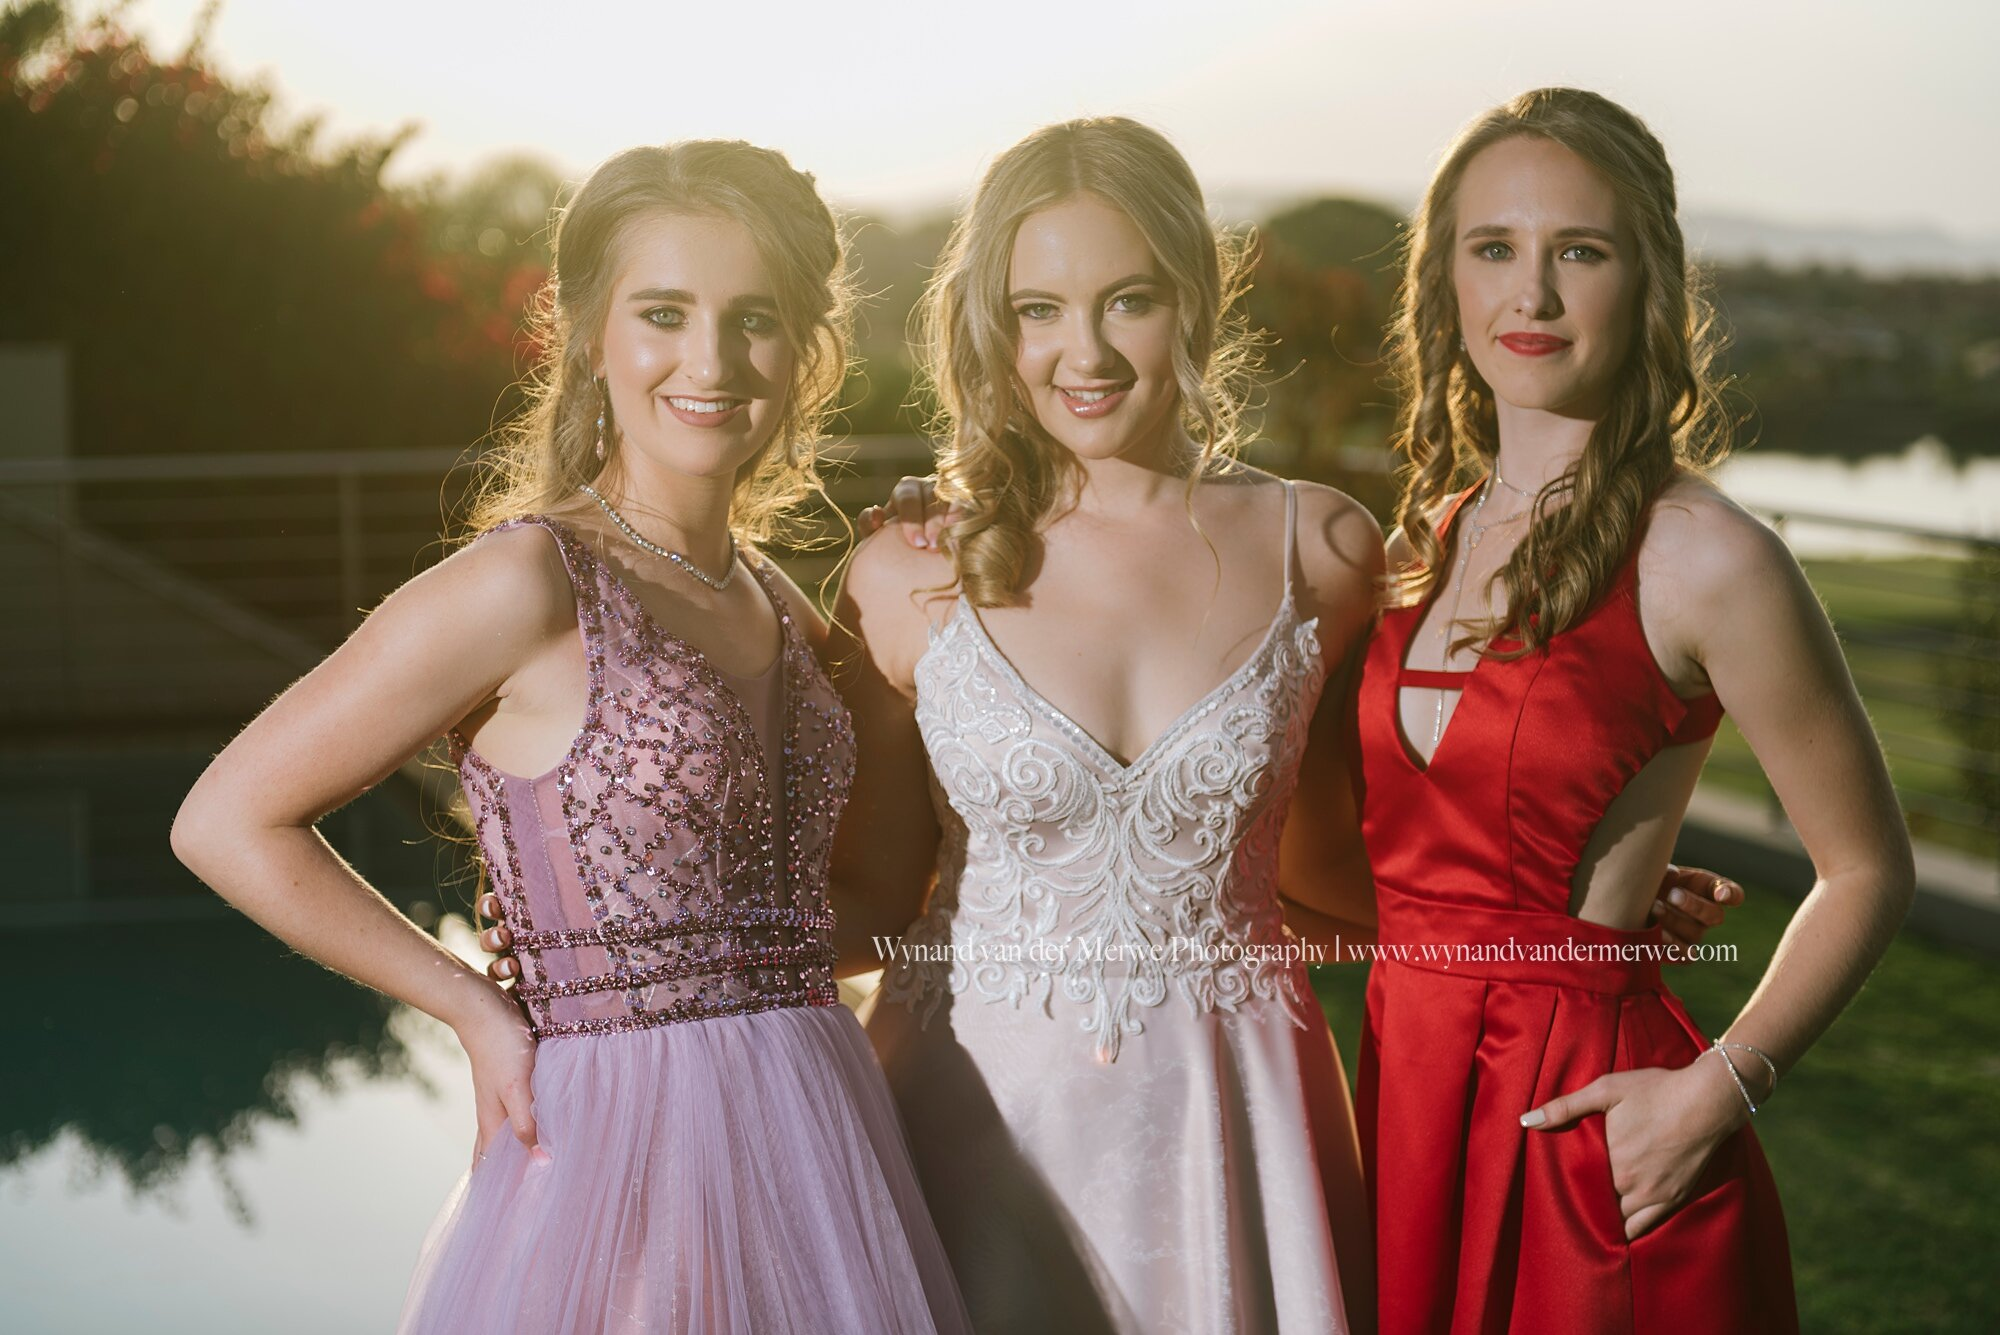 Copy of Liezl and friends matric farewell